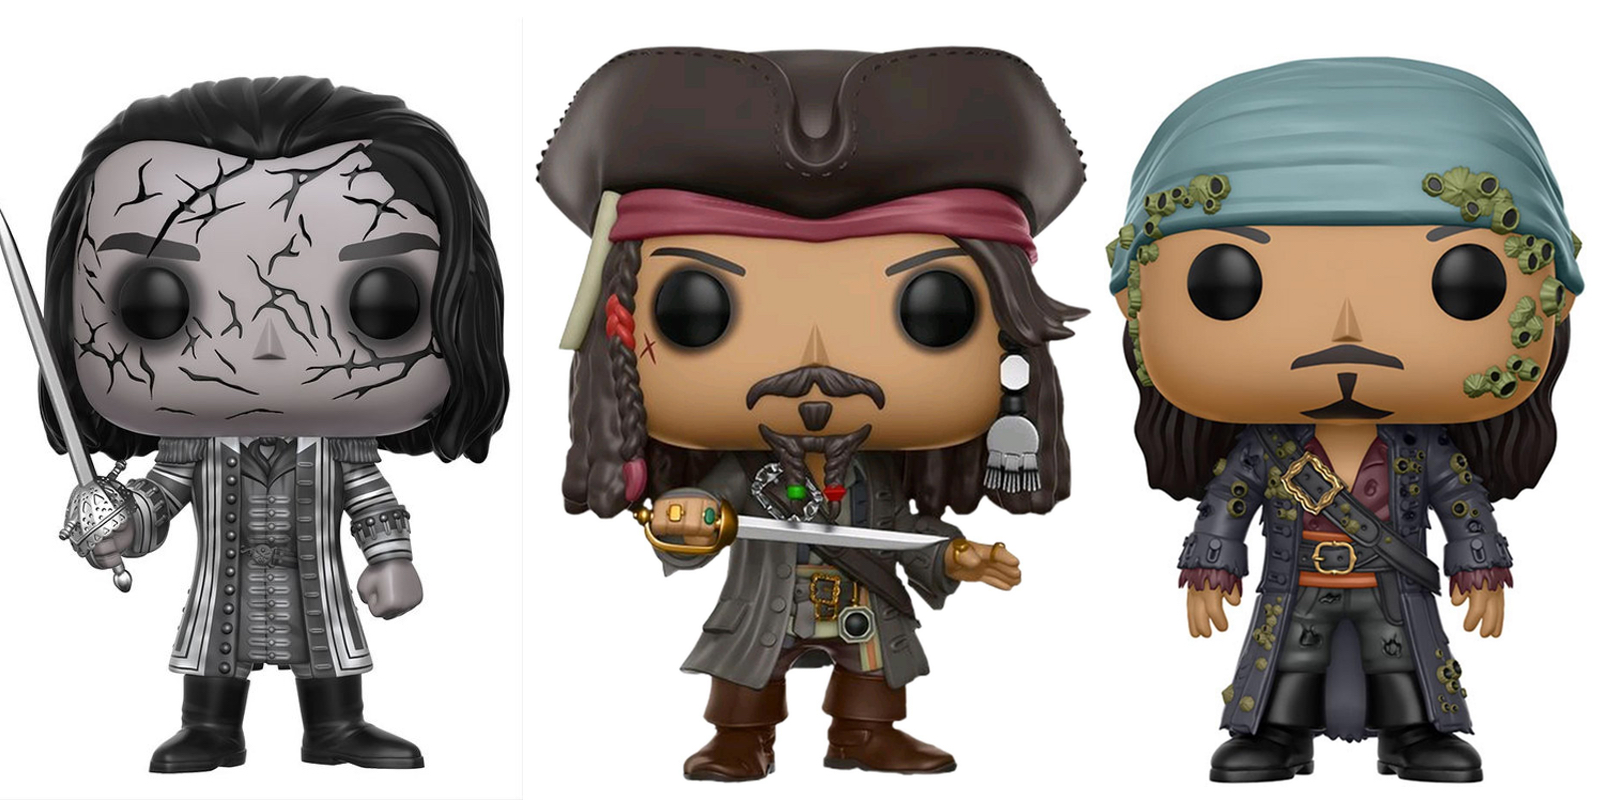 Pirates Of The Caribbean Toys : Pirates of the caribbean funko figures screen rant